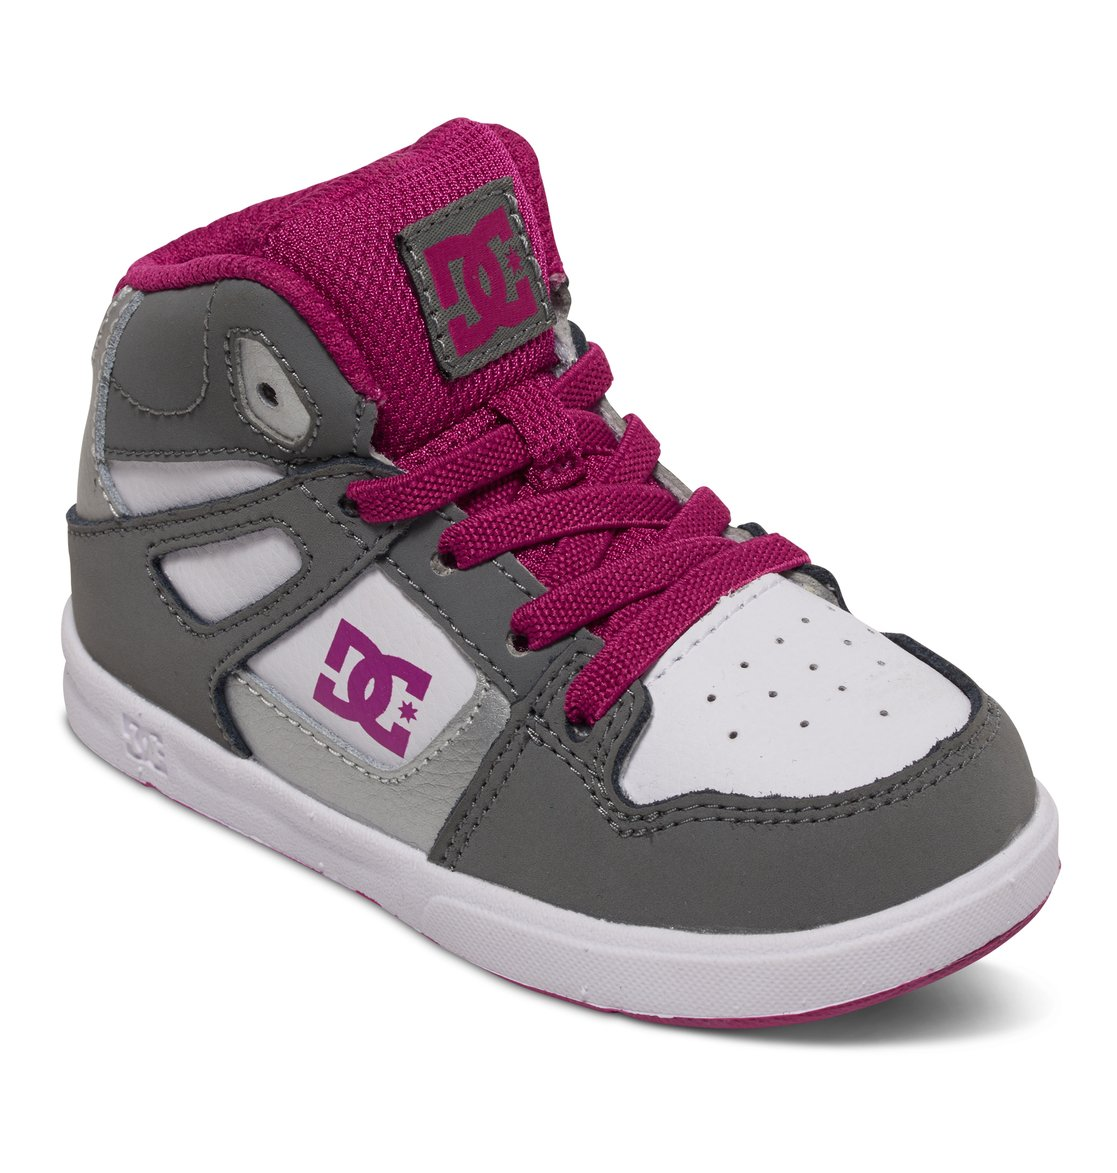 For shoes with less ankle coverage, explore styles of boys' low top shoes. Shop high top shoes for men, women and girls, and be sure to check out the full collection of boys' sneakers for additional footwear styles. Customize a pair of boys' shoes with NIKEiD.